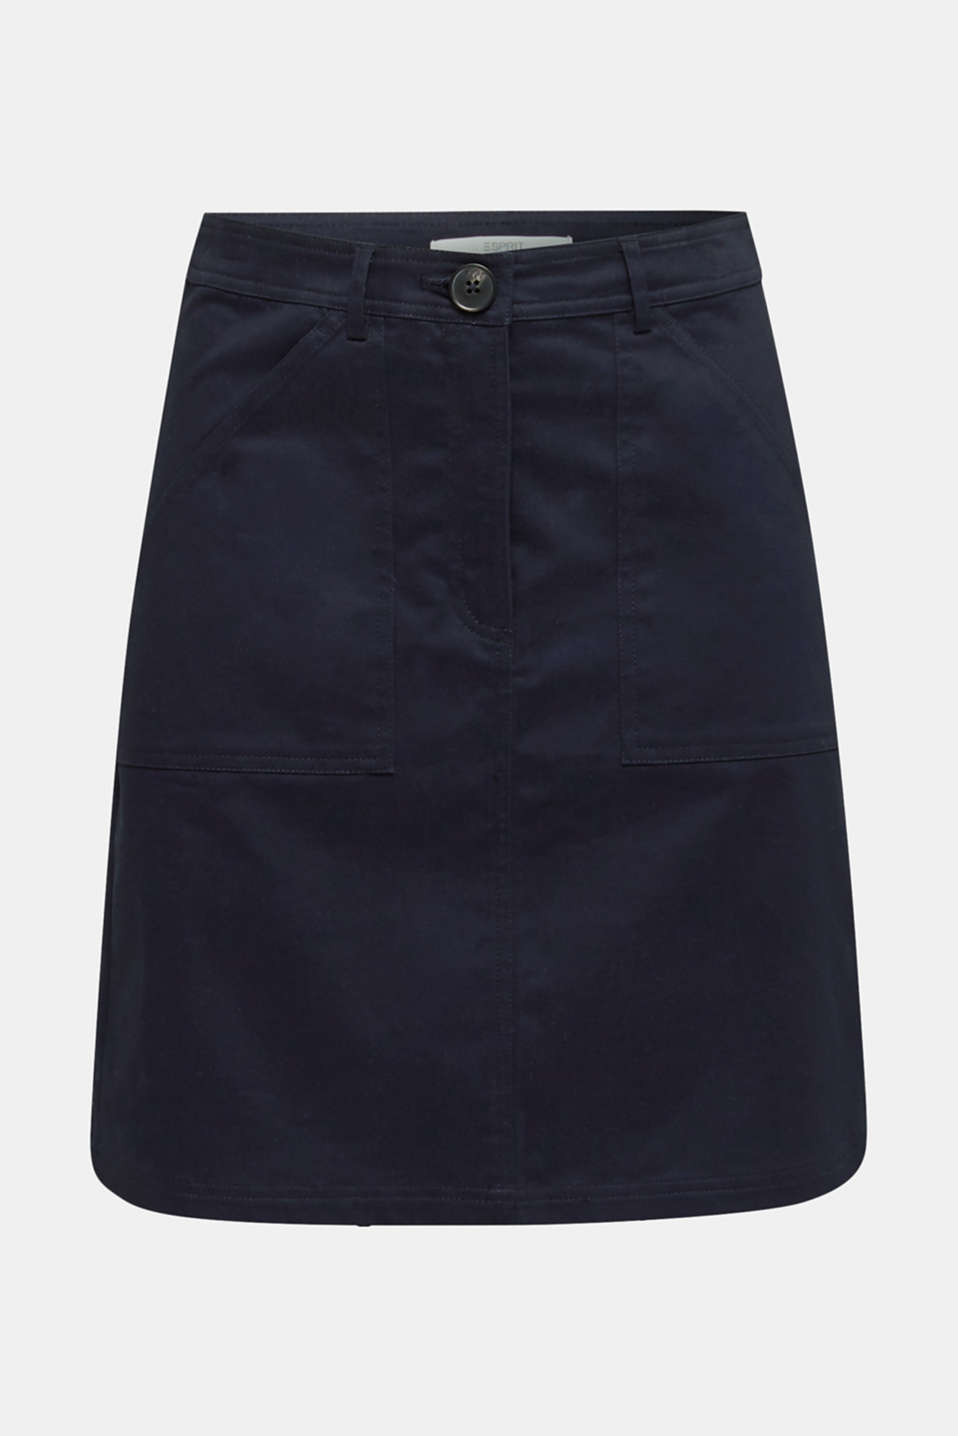 Mini skirt with patch pockets, NAVY, detail image number 7